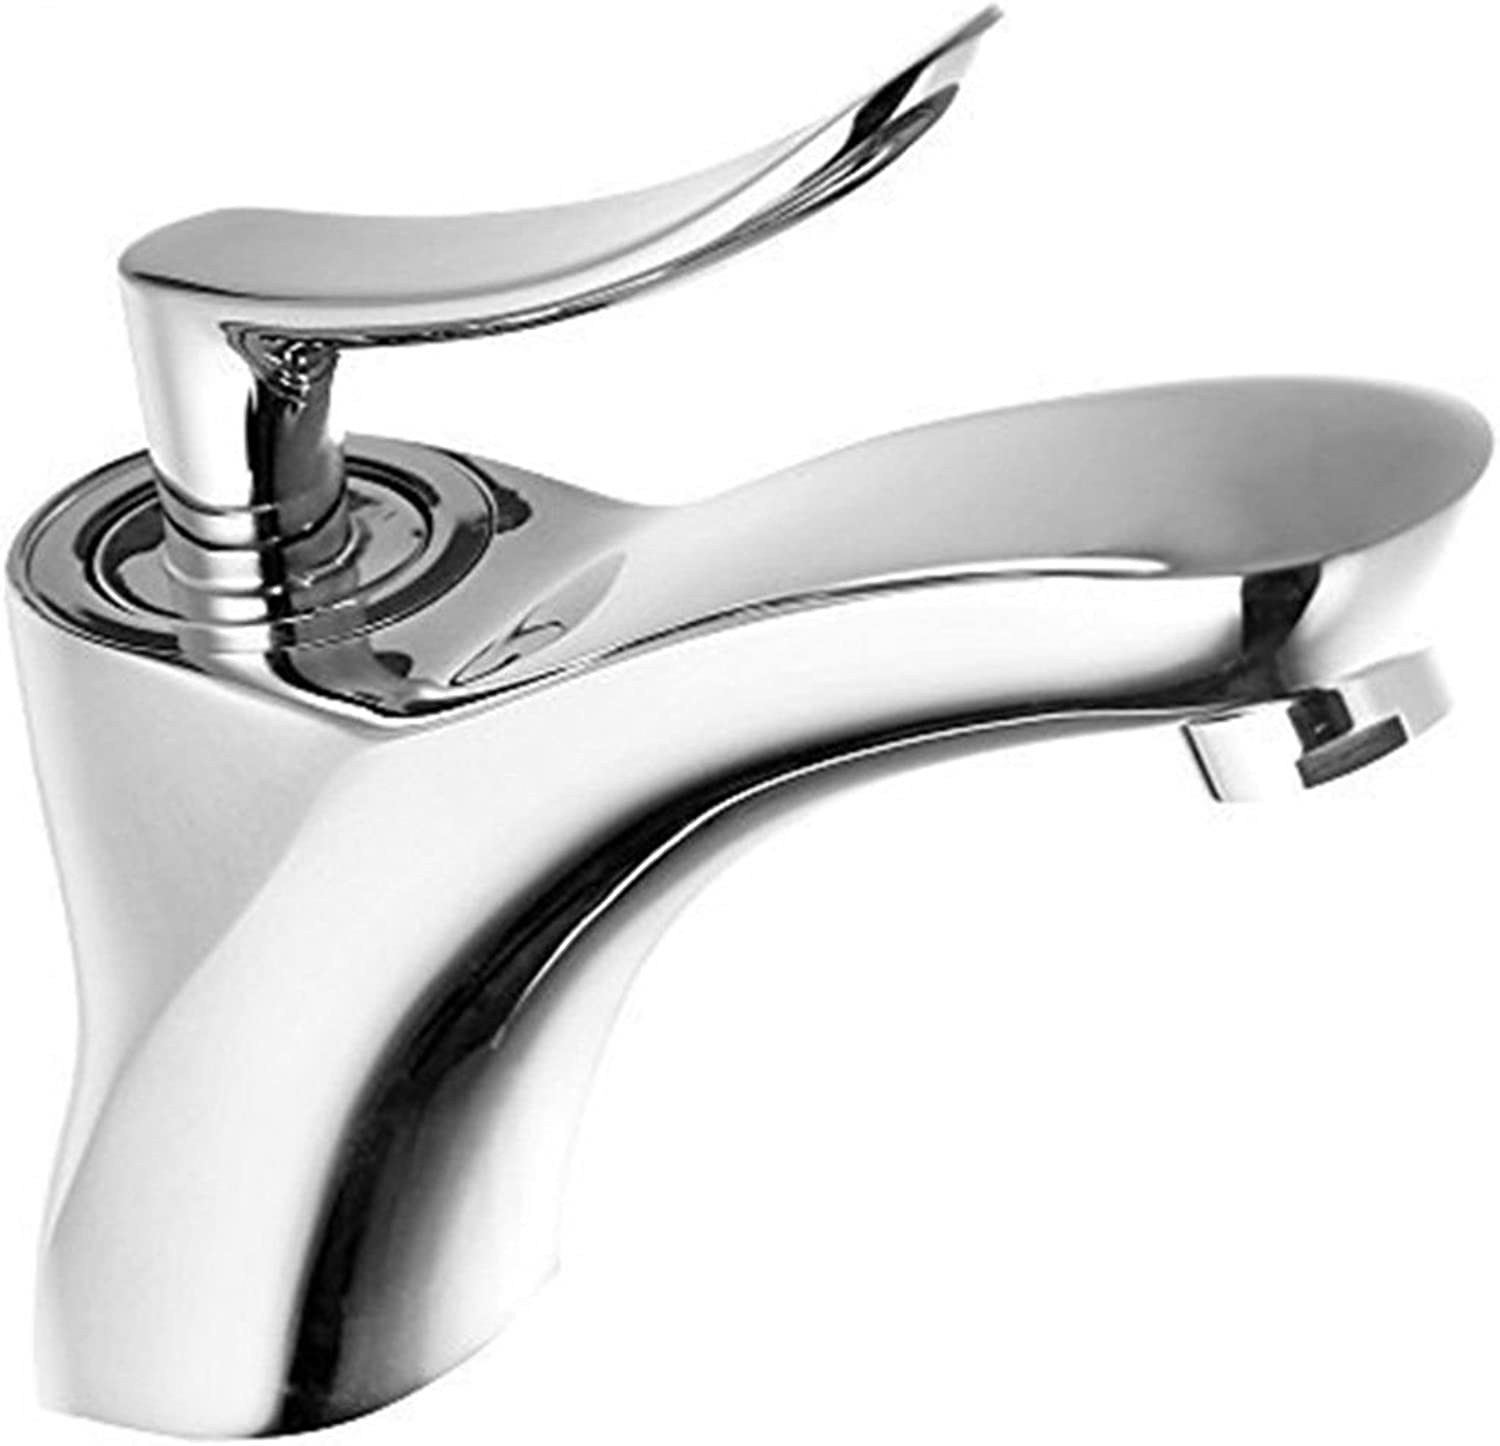 AQMMi Bathroom Sink Faucet Basin Mixer Tap Brass Single Lever Hot and Cold Water Basin Sink Tap Bathroom Bar Faucet